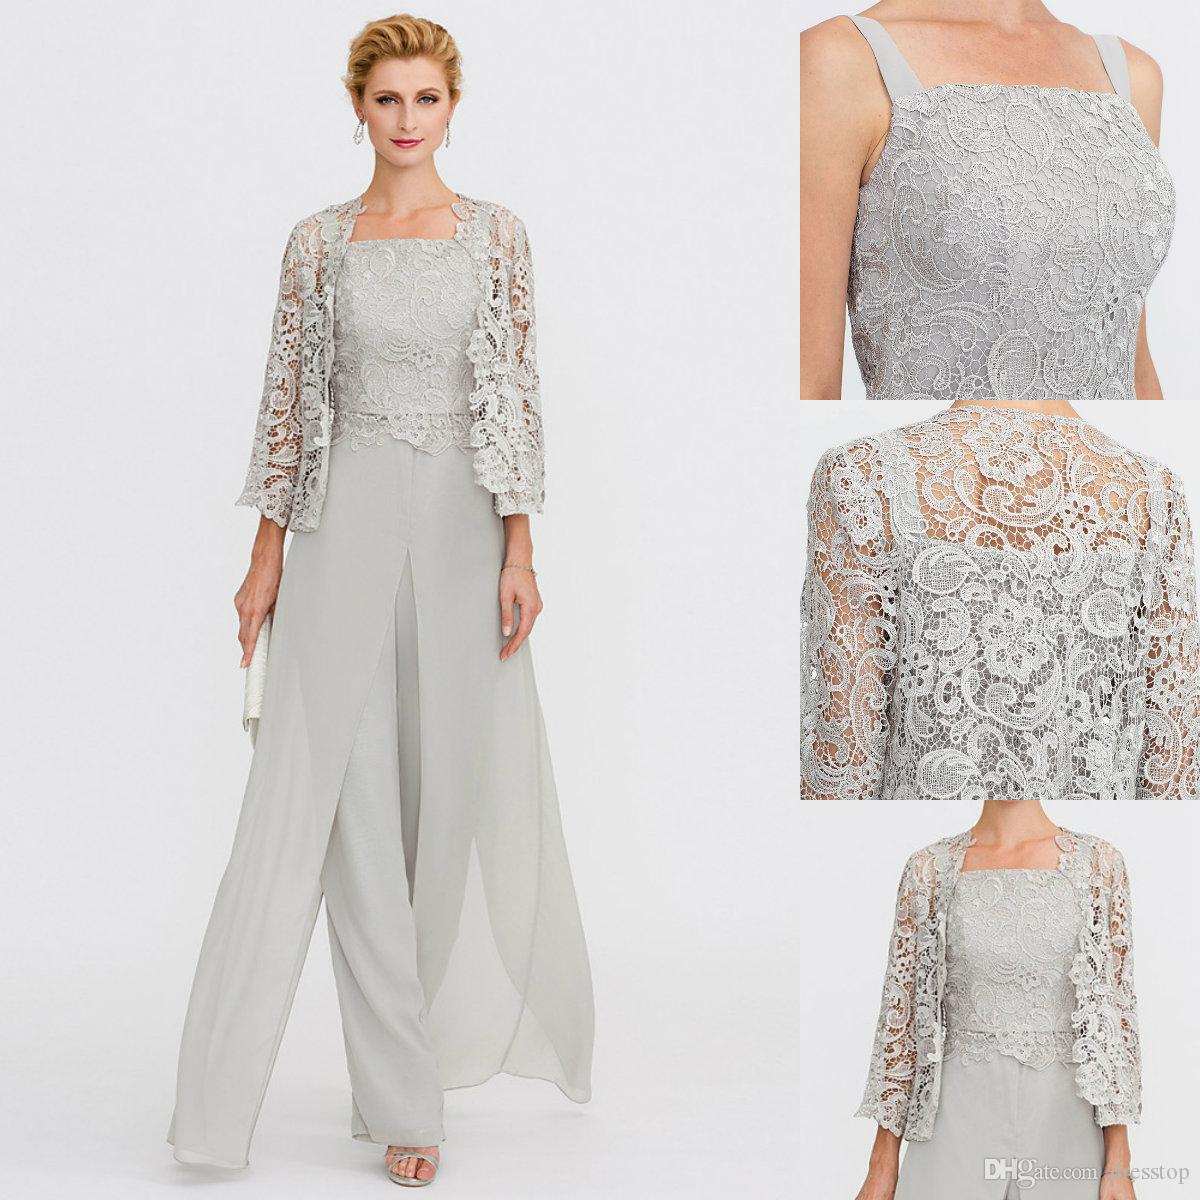 Mother of Bride Dresses 2019 Pantsuit Front Split Straps Ankle Length Silver Gray Chiffon Corded Lace 3 Pieces Outfits